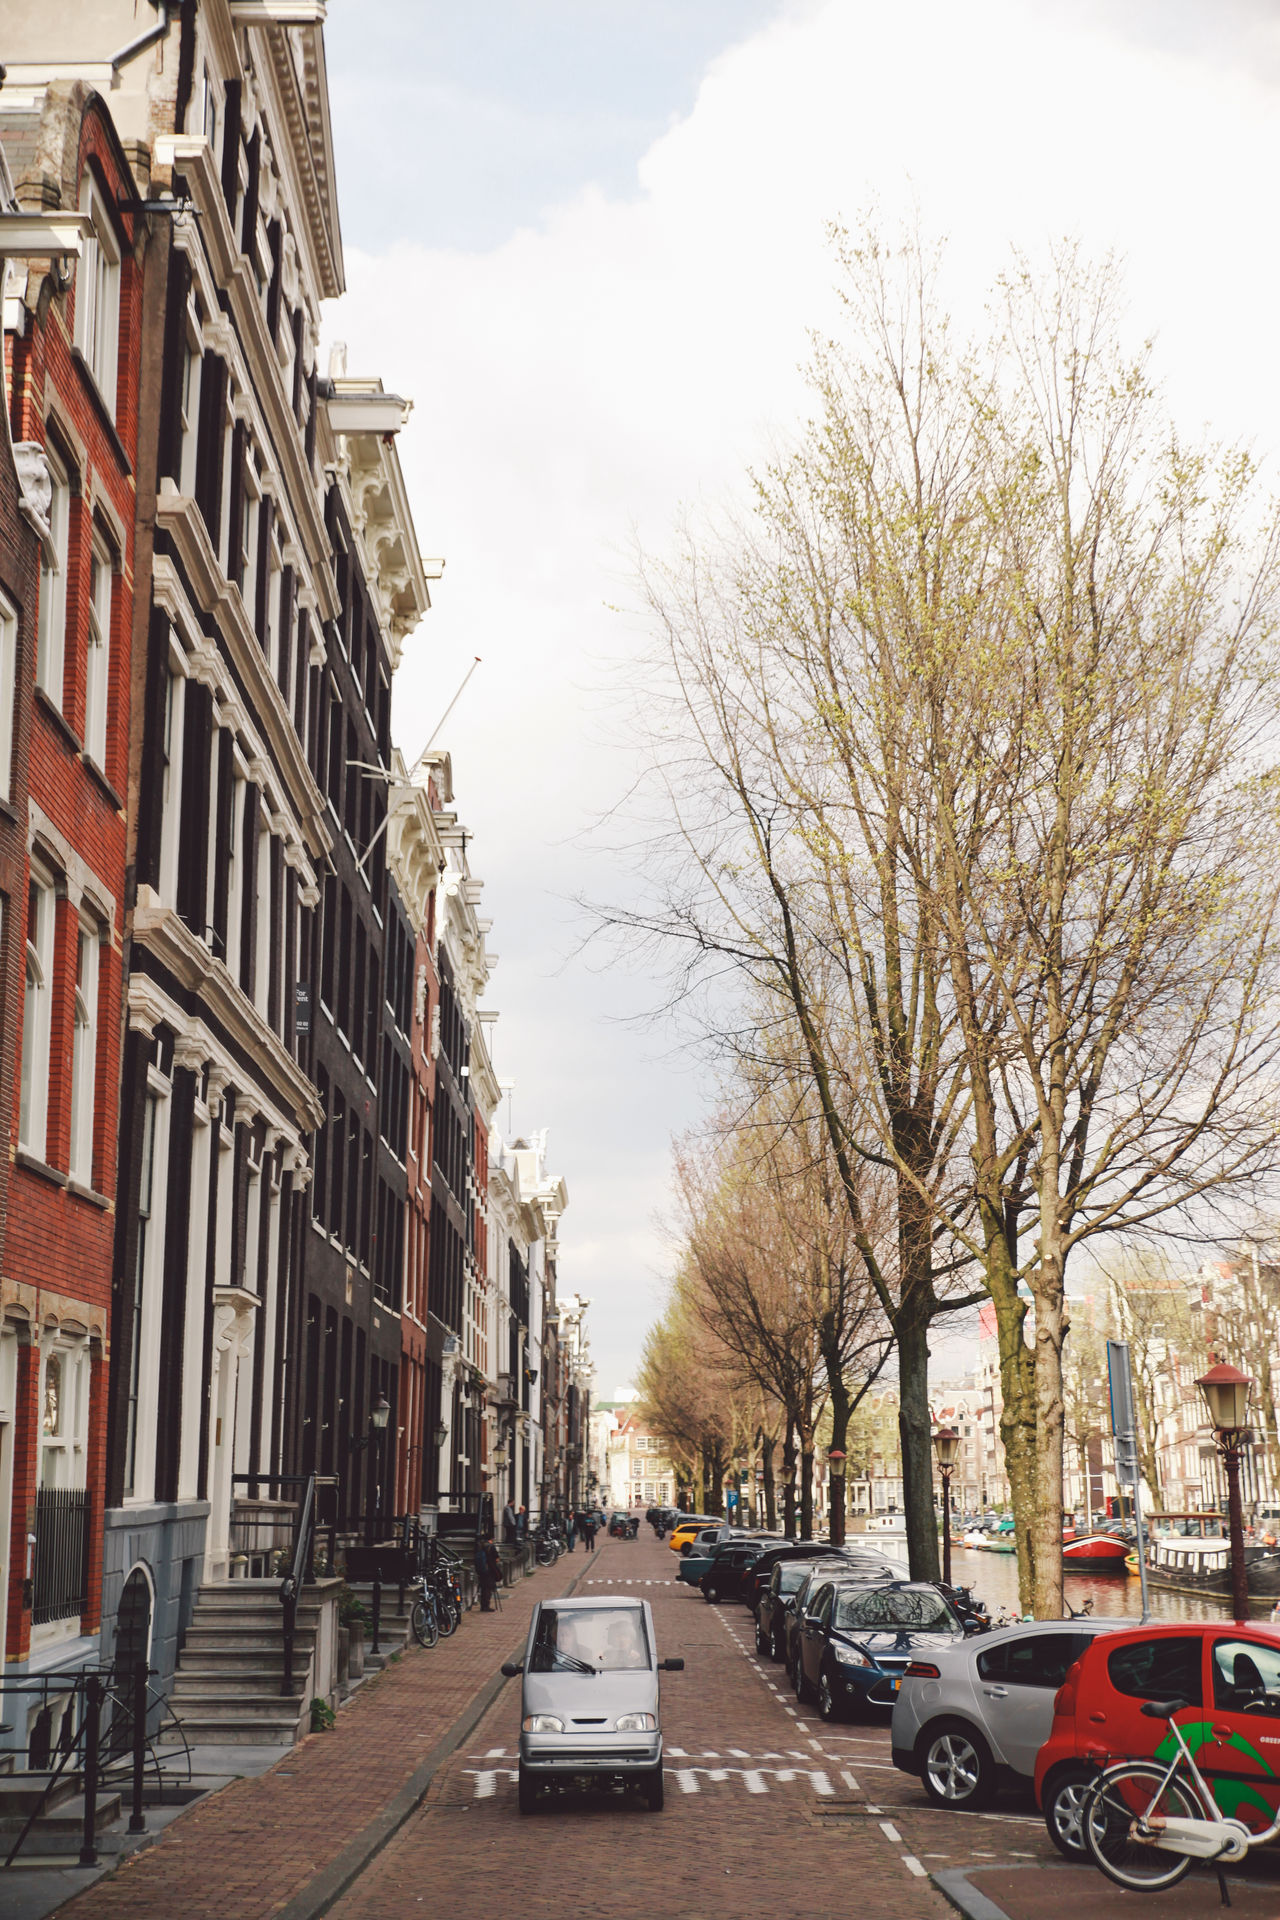 2016 April Architecture Bare Tree Building Built Structure MeinAutomoment Need For Speed City Street Electric Car In A Row Land Vehicle Mode Of Transport Outdoors Residential Building Road Small Car Spring The Way Forward Transportation Tree Vanishing Point Your Amsterdam Telling Stories Differently The Street Photographer - 2016 EyeEm Awards